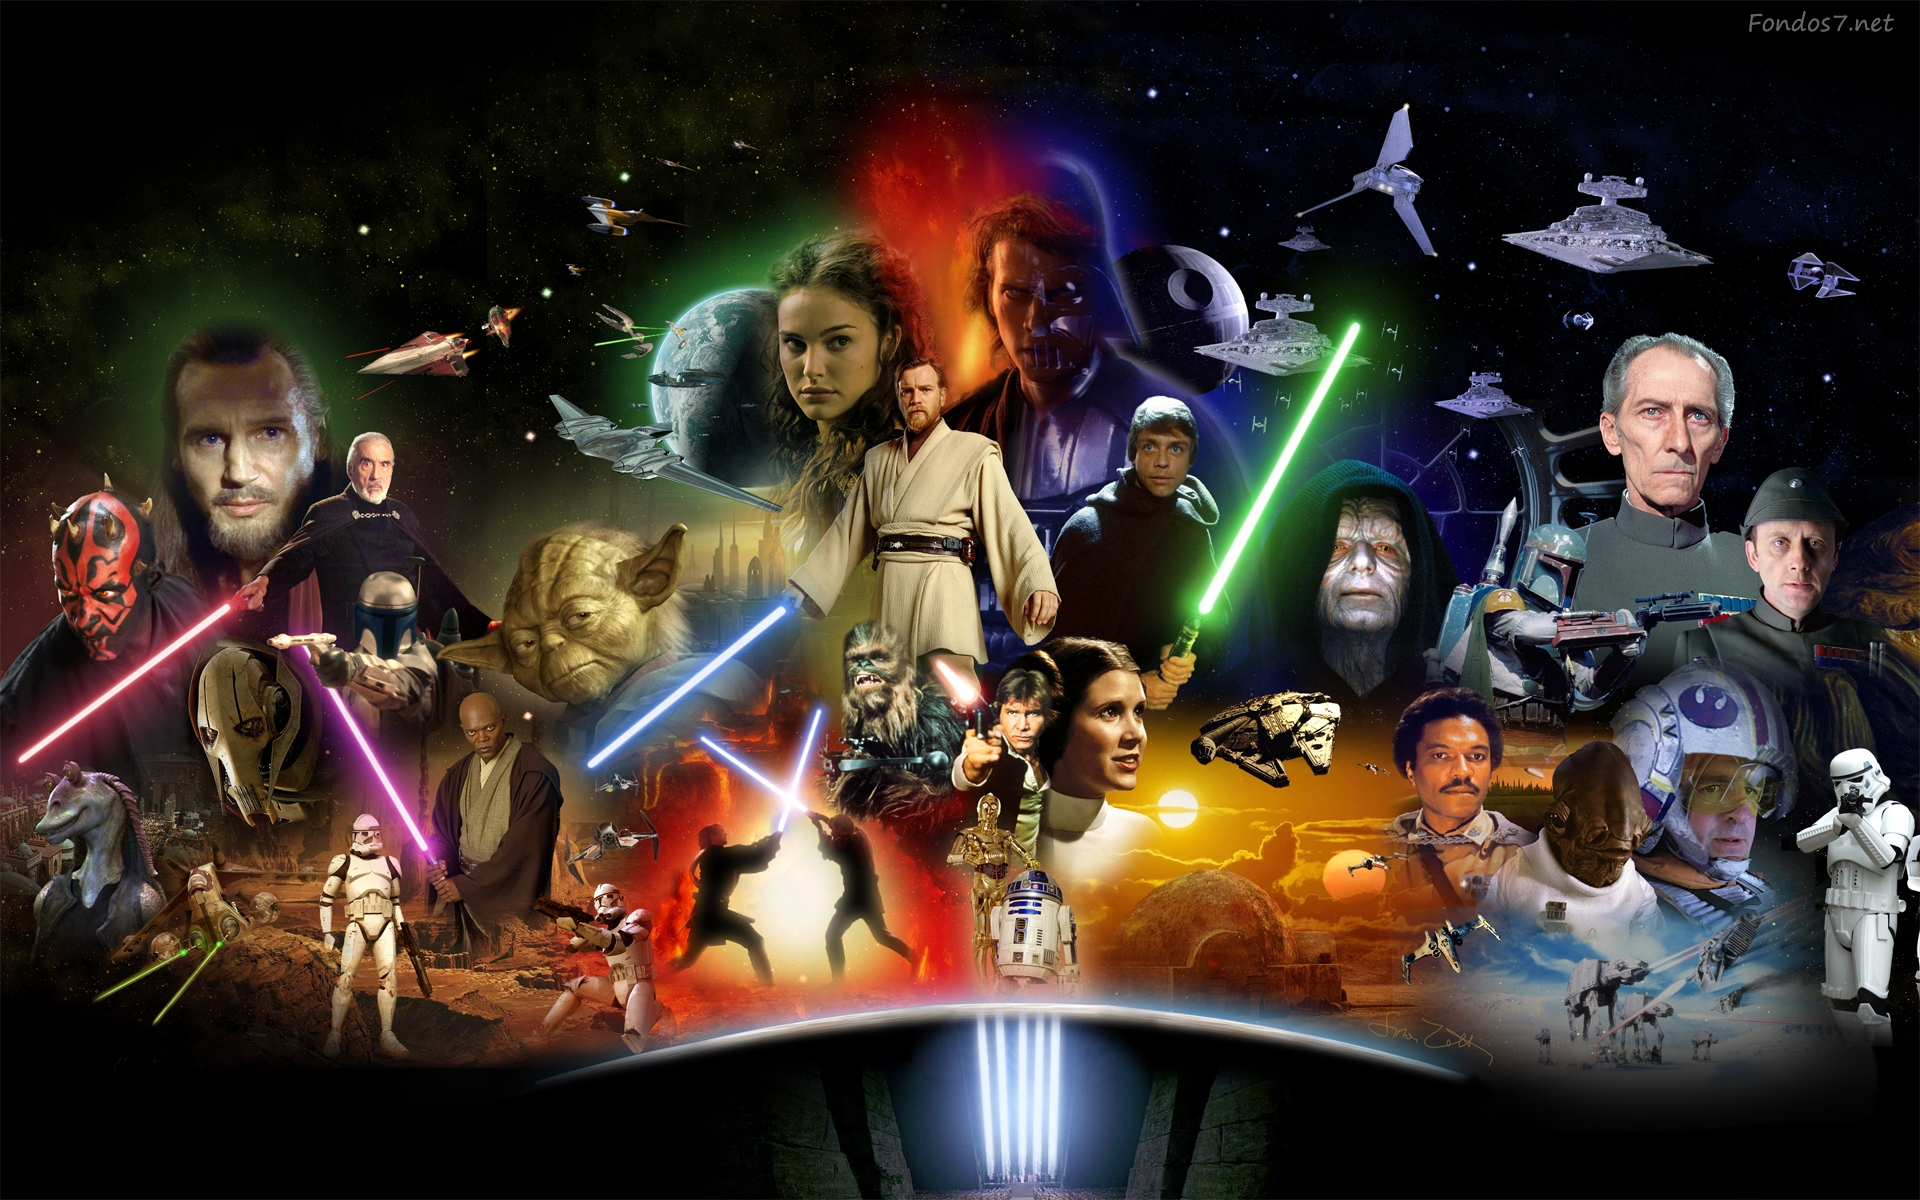 Hoy les traigo Star Wars Wallpapers en 1080p 1920x1200